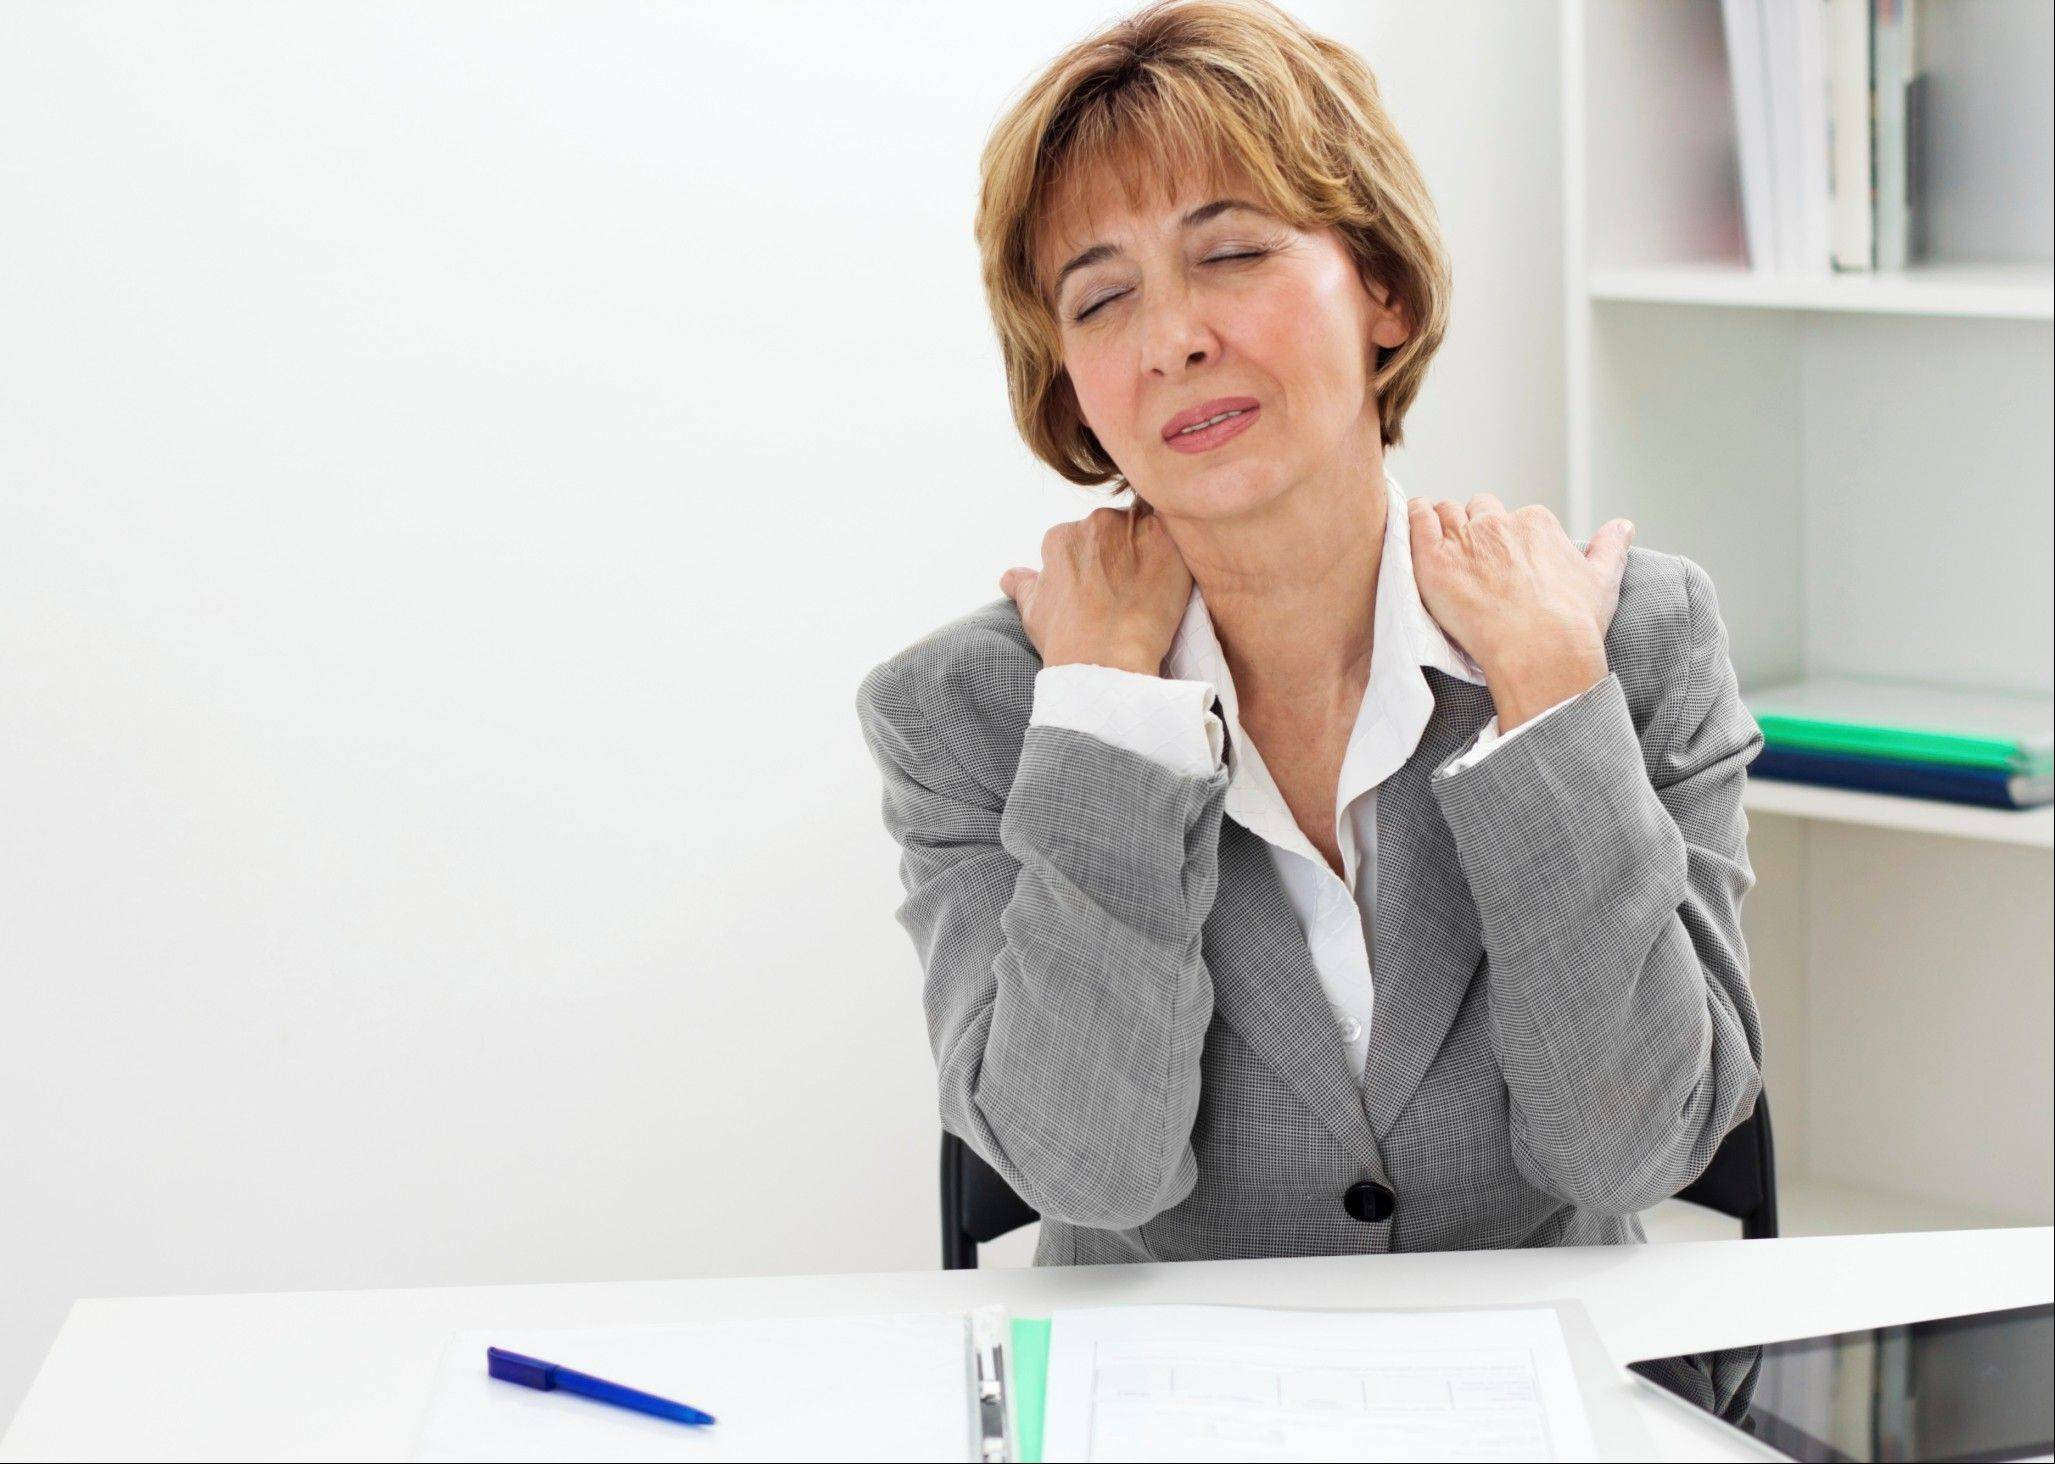 To help avoid neck pain, don�t stay in one position for too long. If you get up and move around often enough, you�ll avoid getting your neck stuck in an unhealthy position, advises Dr. Zacharia Isaac of Harvard Medical School.